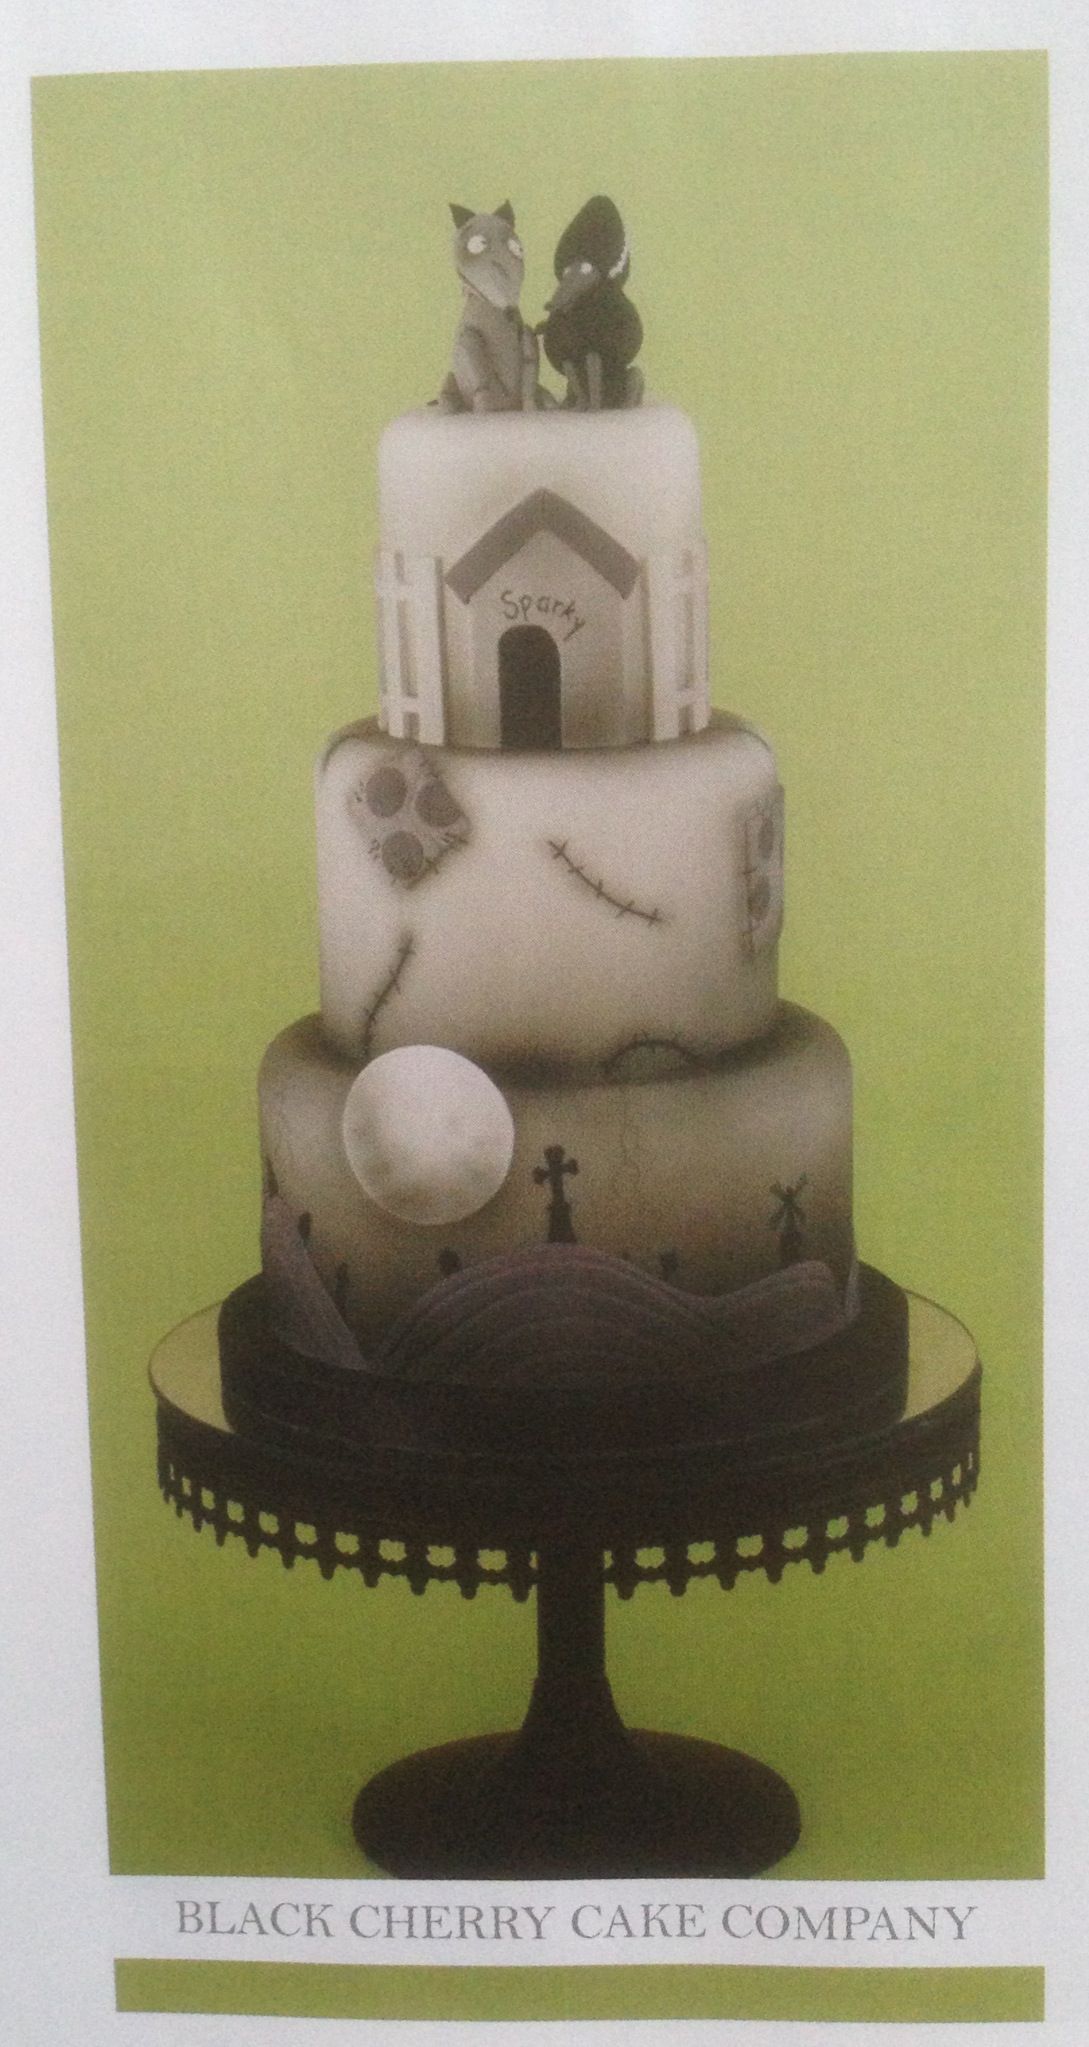 and spooky wedding cake by Black Cherry Cake